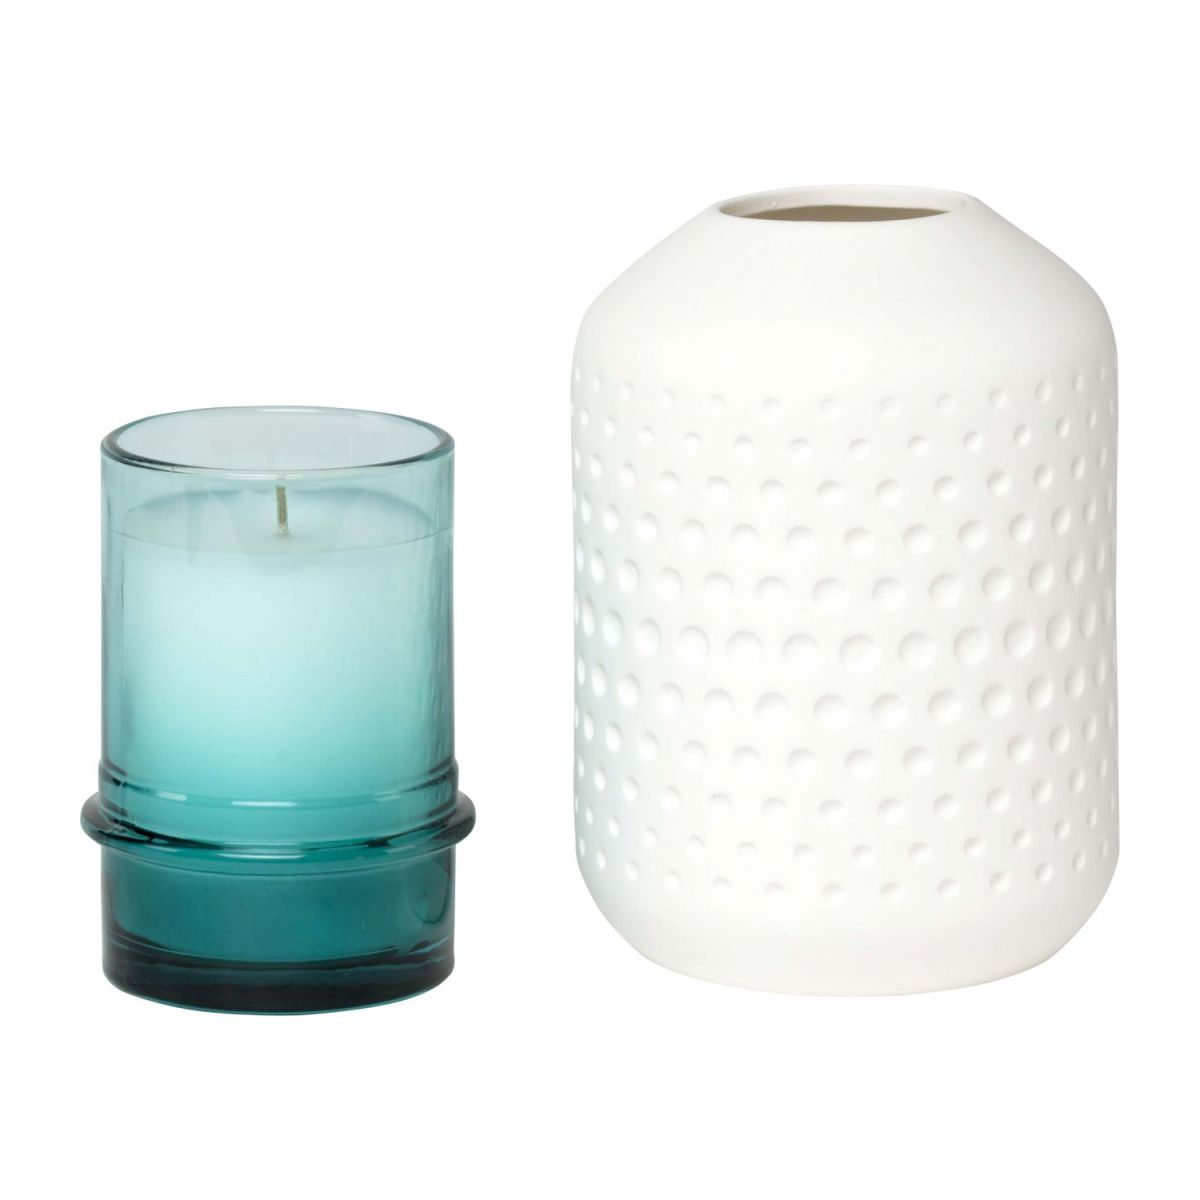 Basil scented candle gift set n°5